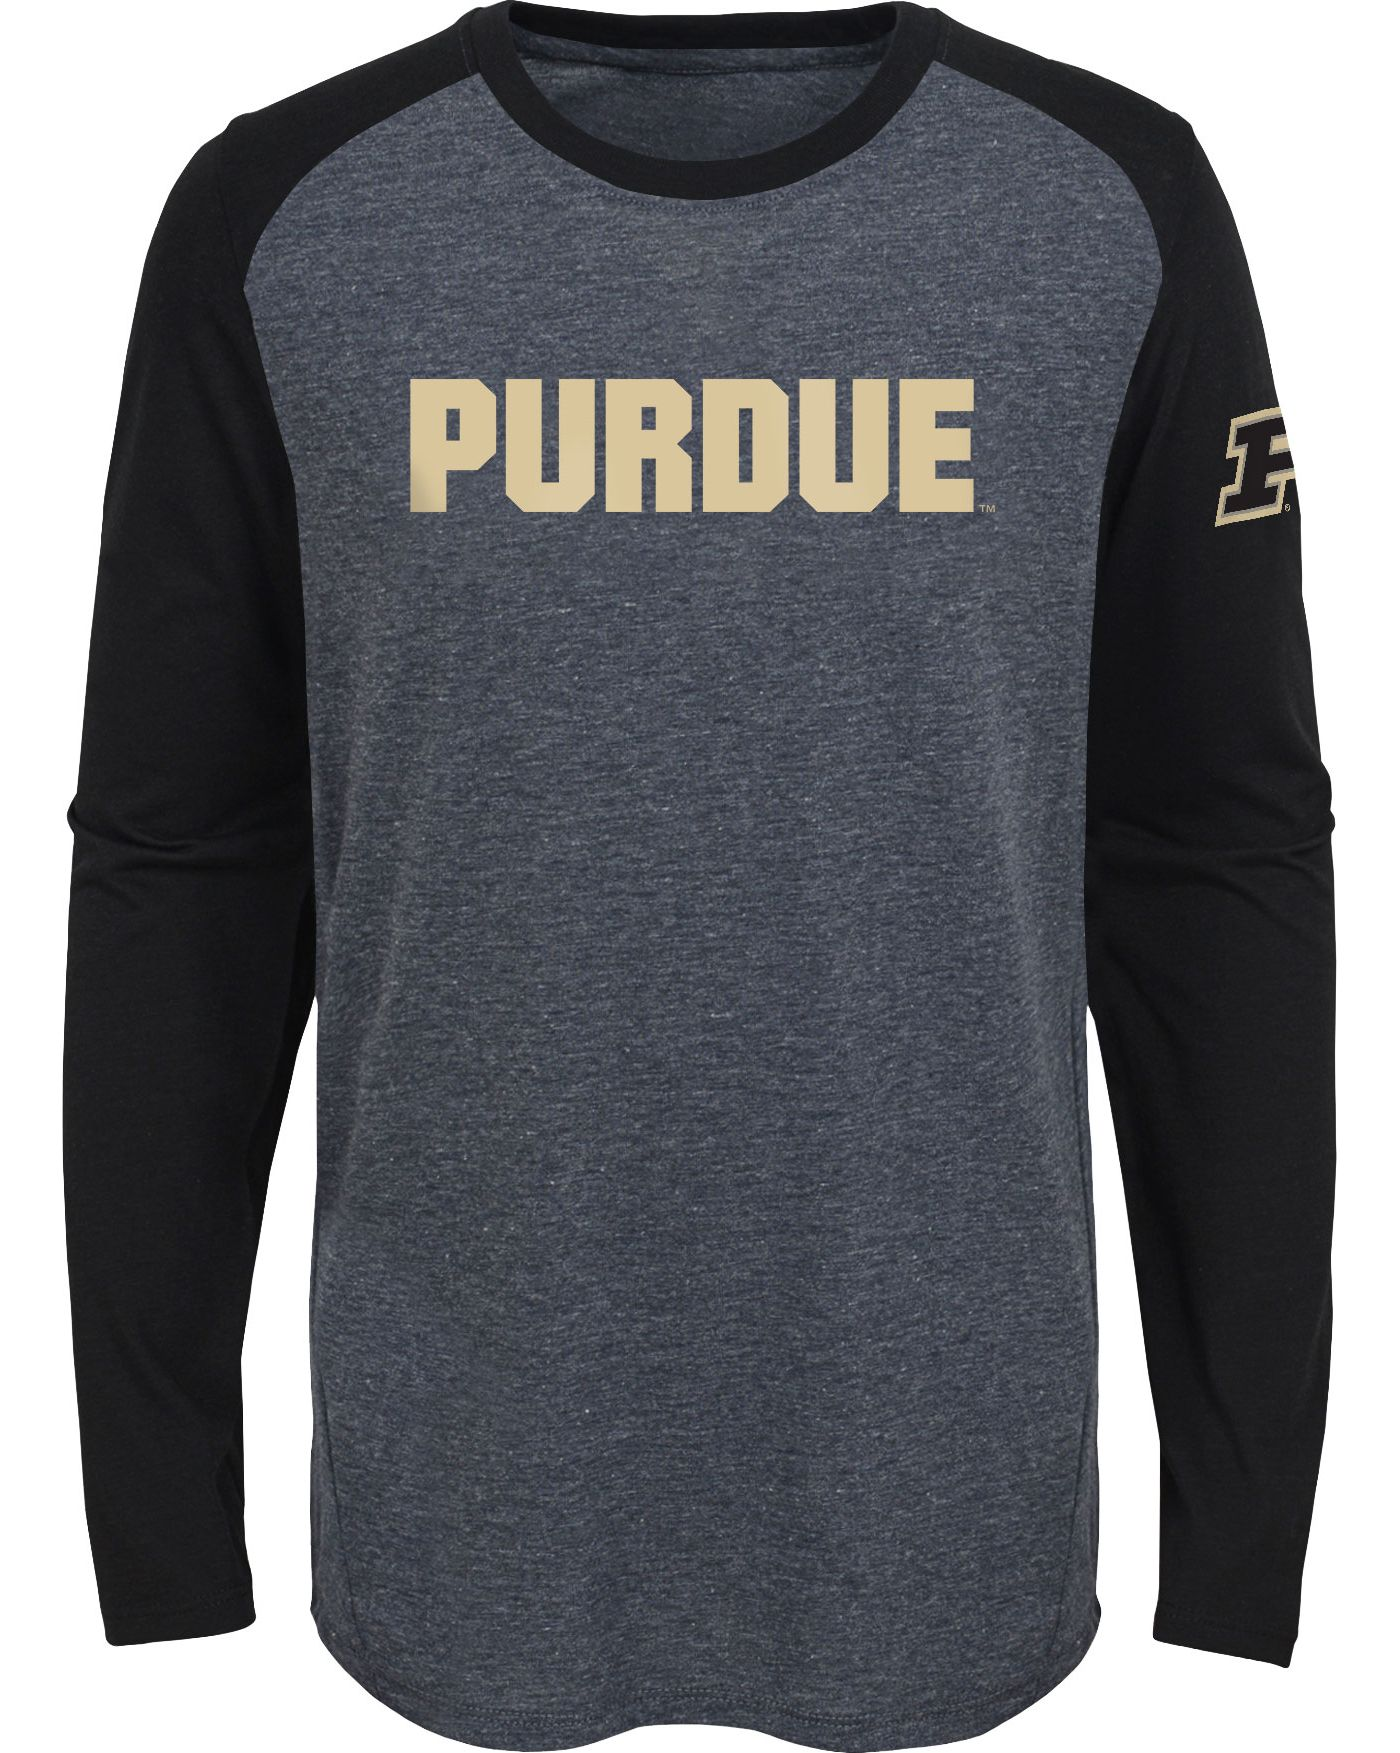 Gen2 Youth Purdue Boilermakers Grey First String Long Sleeve T-Shirt